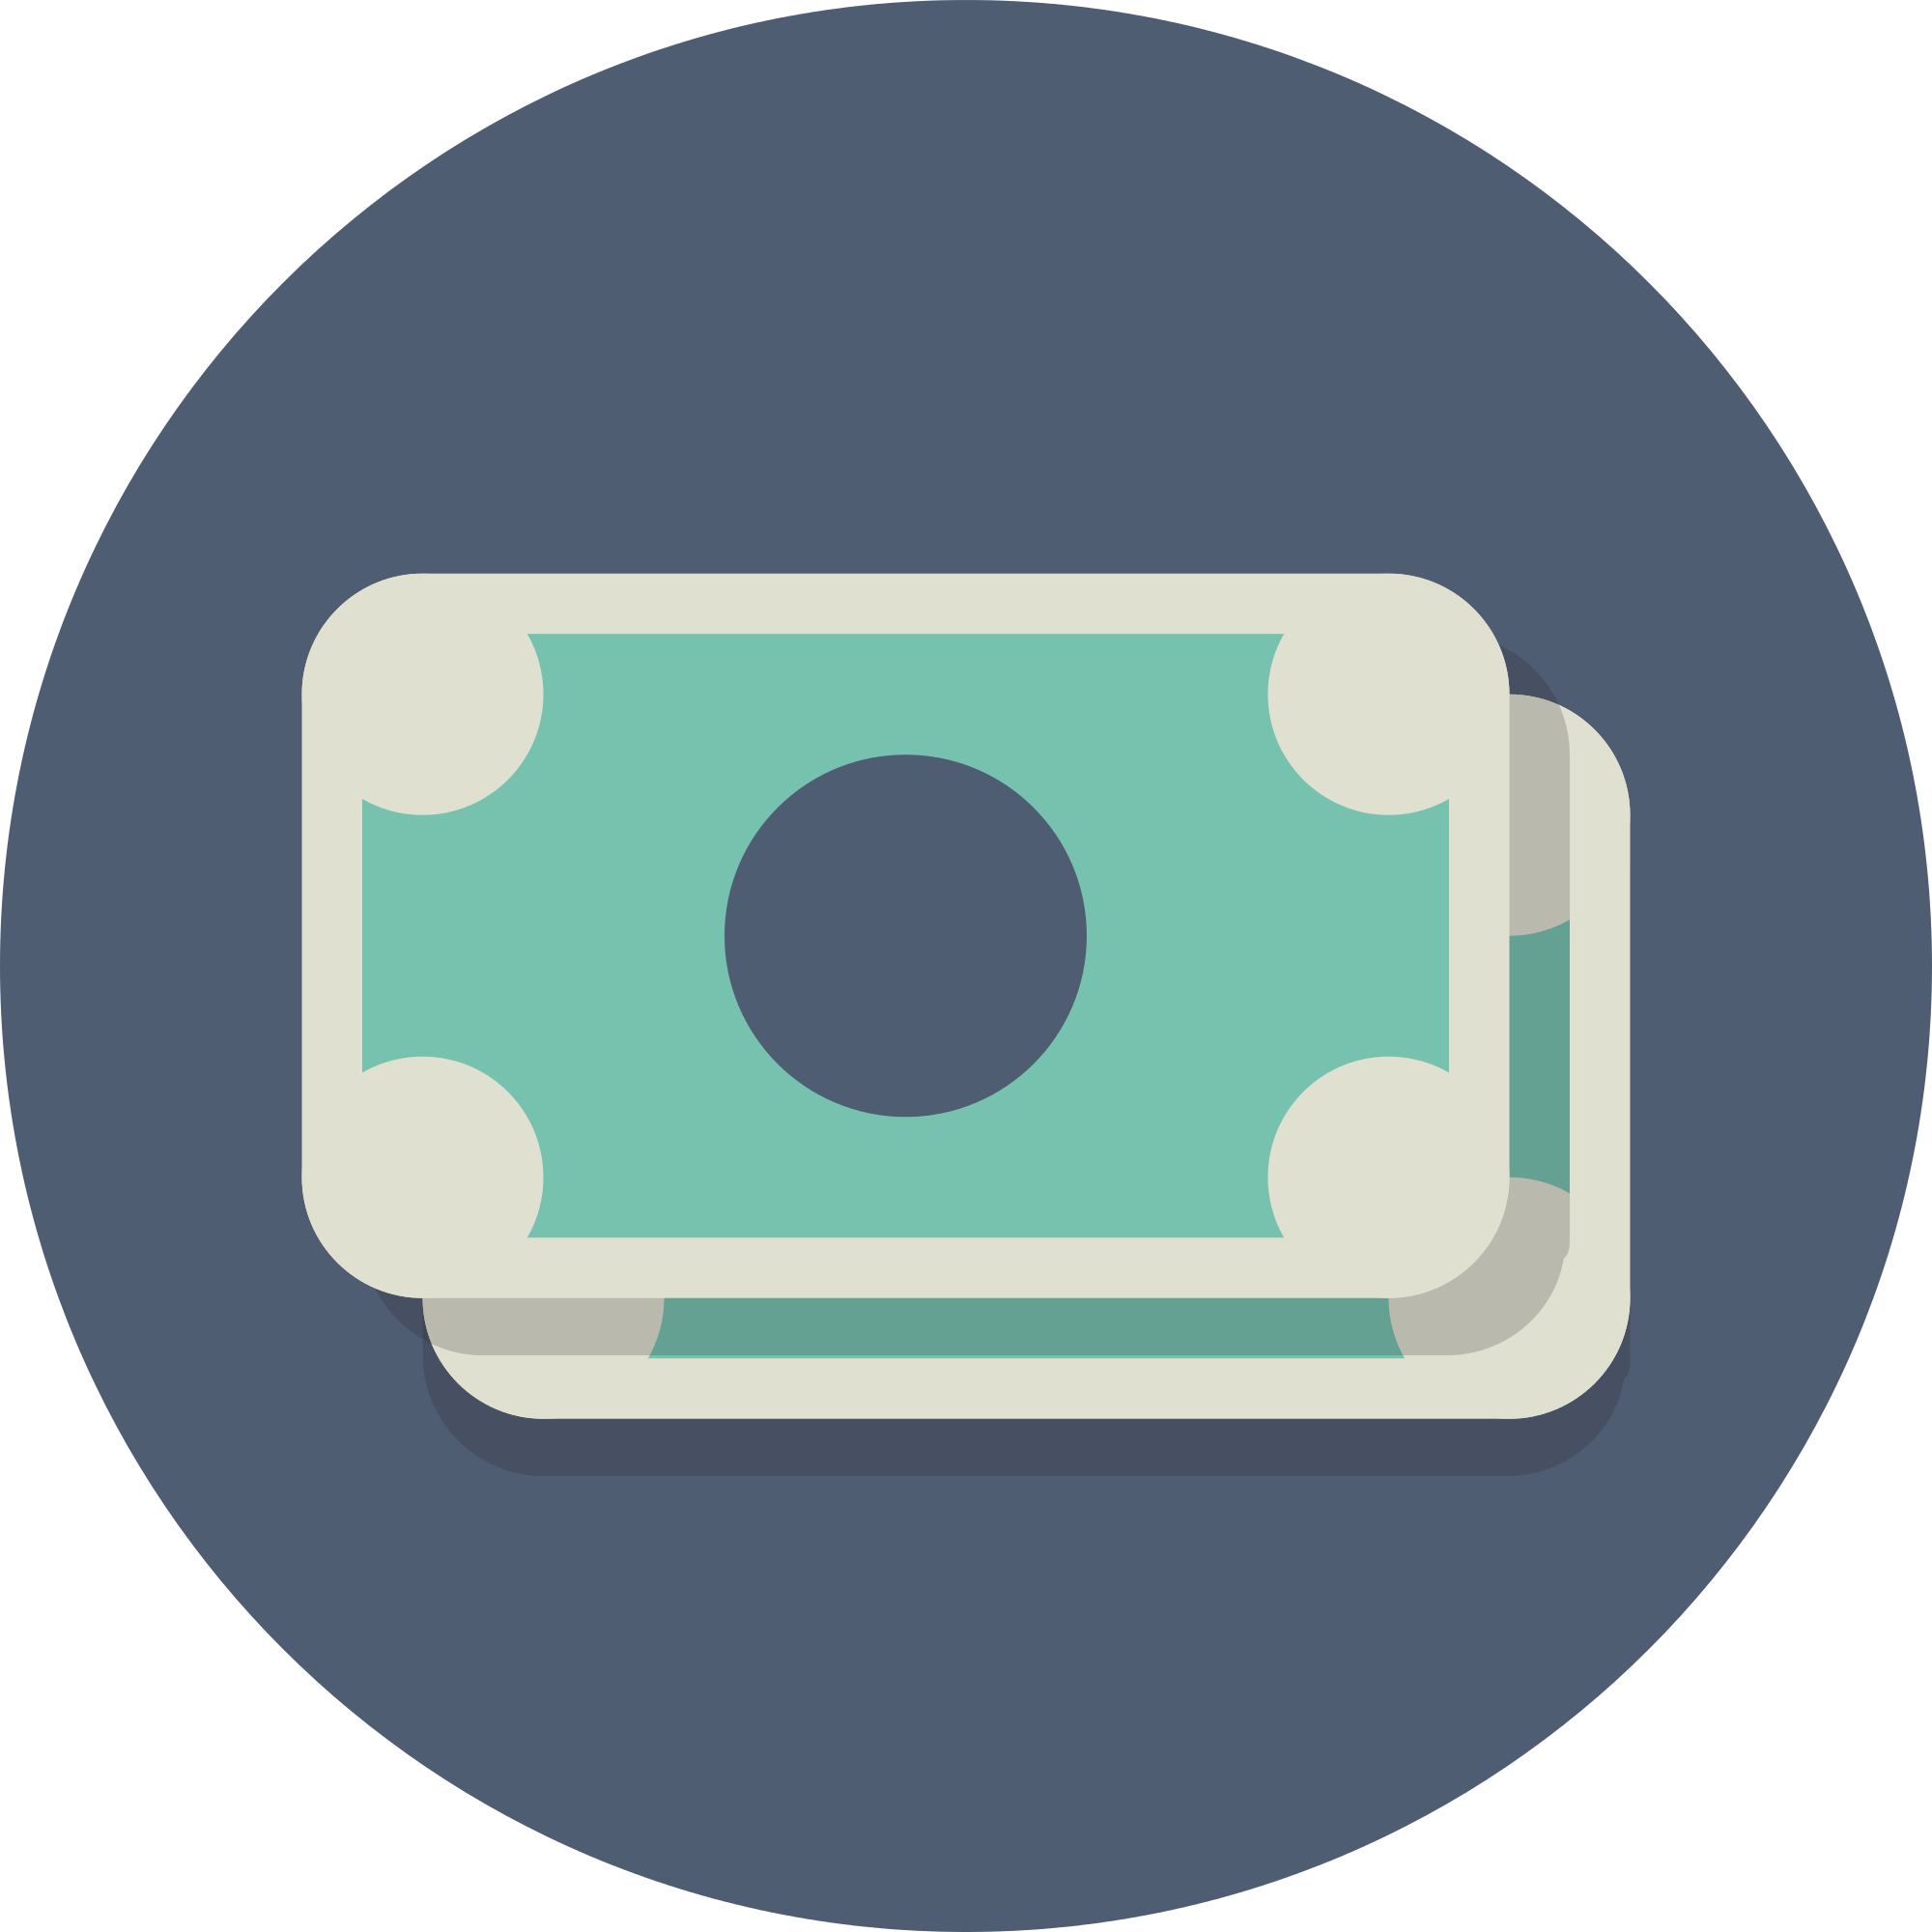 Money png icon. Clipart circle pencil and